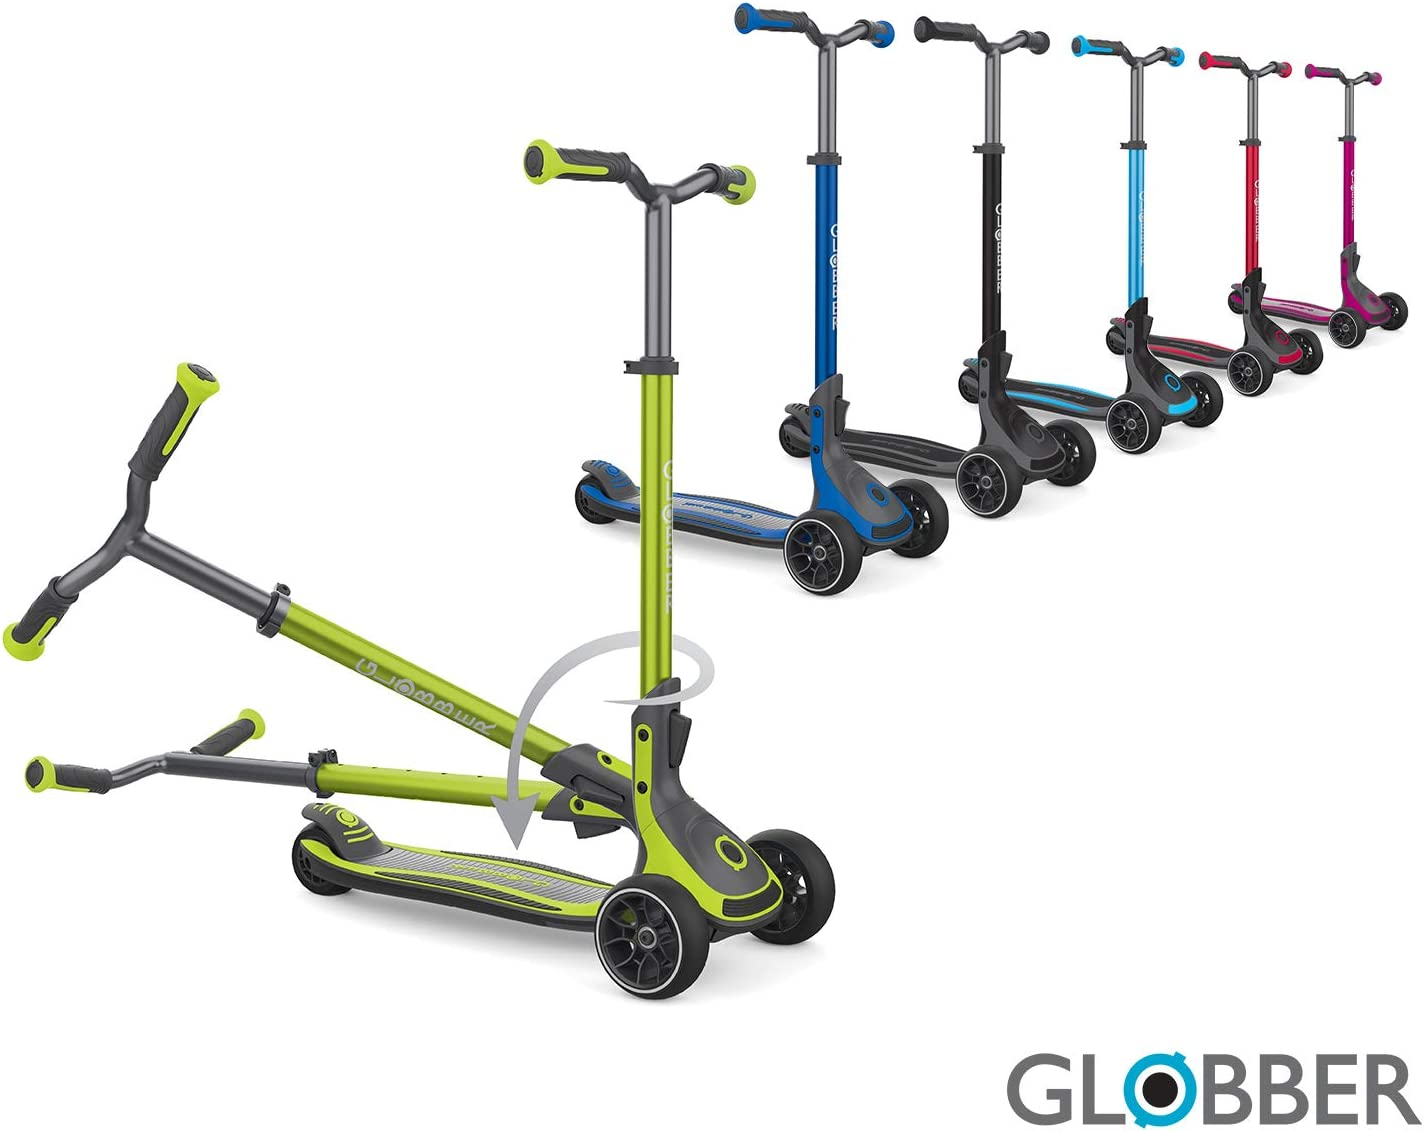 Globber ULTIMUM for Kids, Teens, and Adults 3-Wheel Scooter Patented, Adjustable Steering Angle Control System